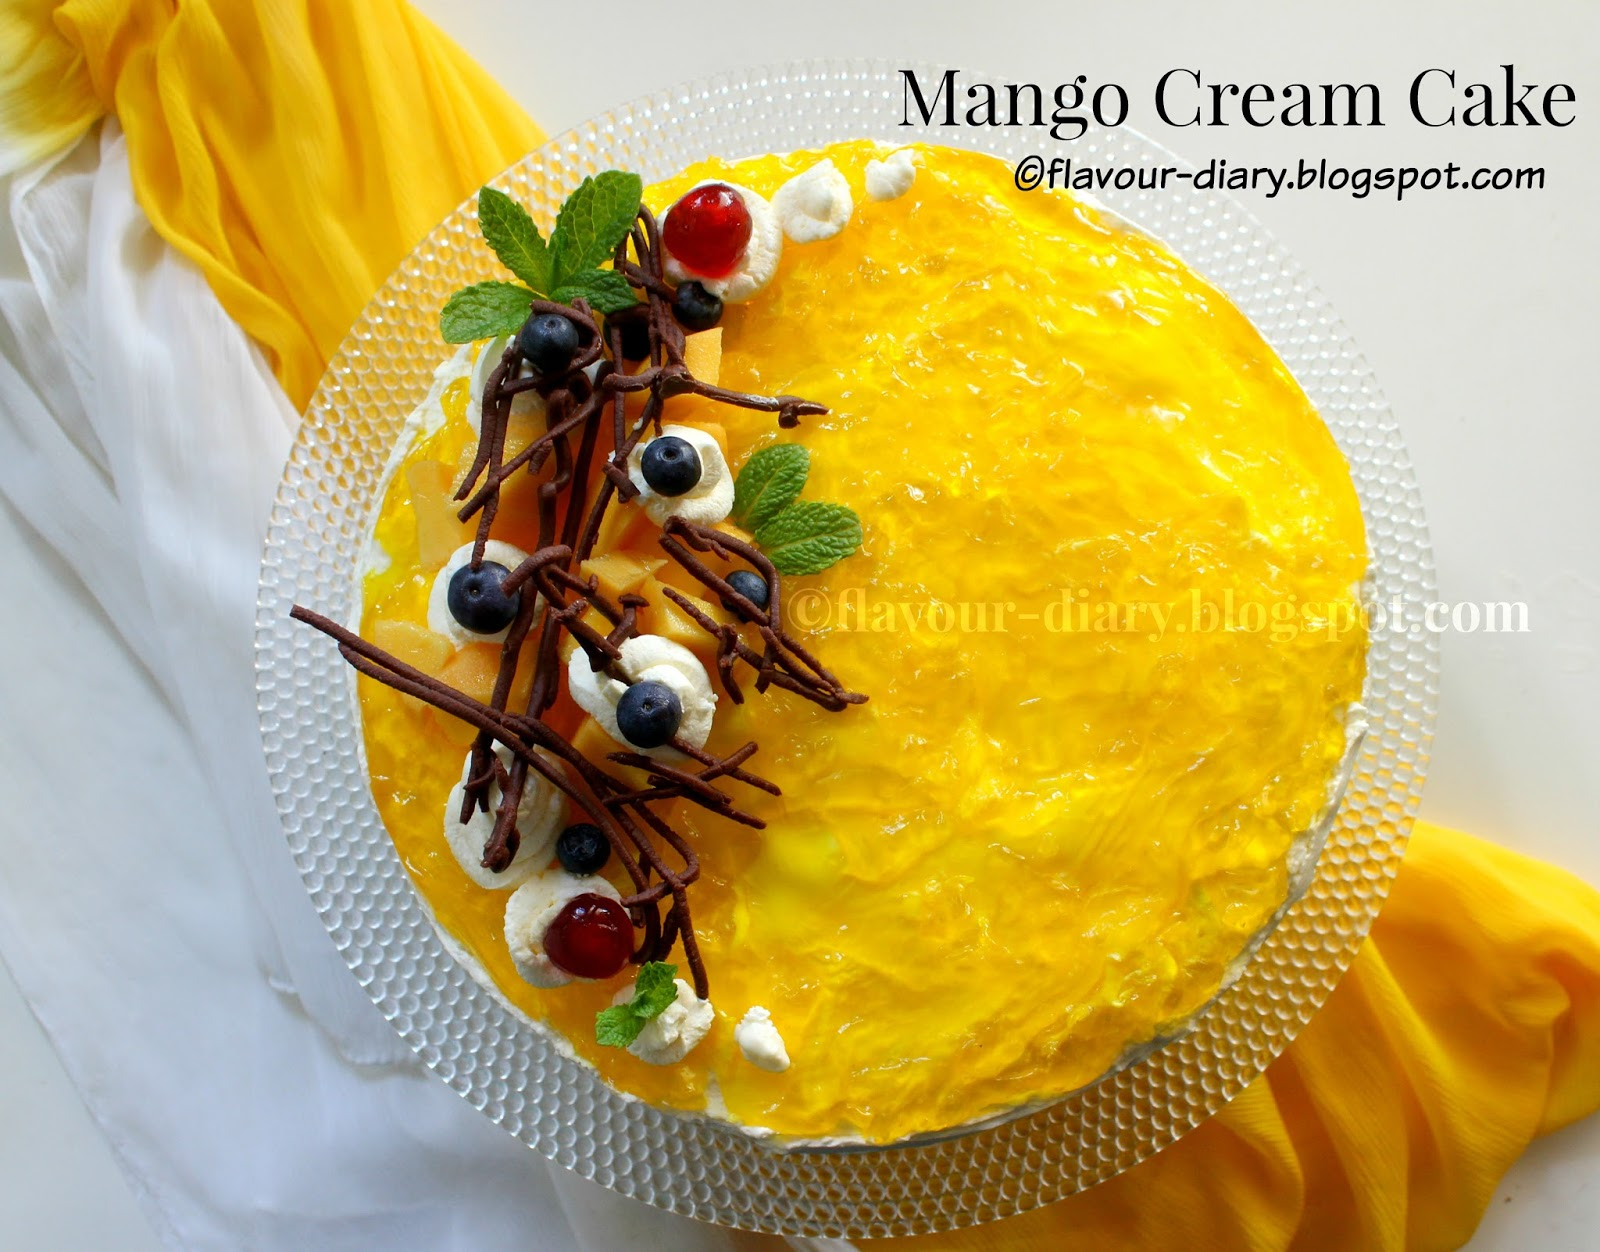 Mango cream Cake recipe